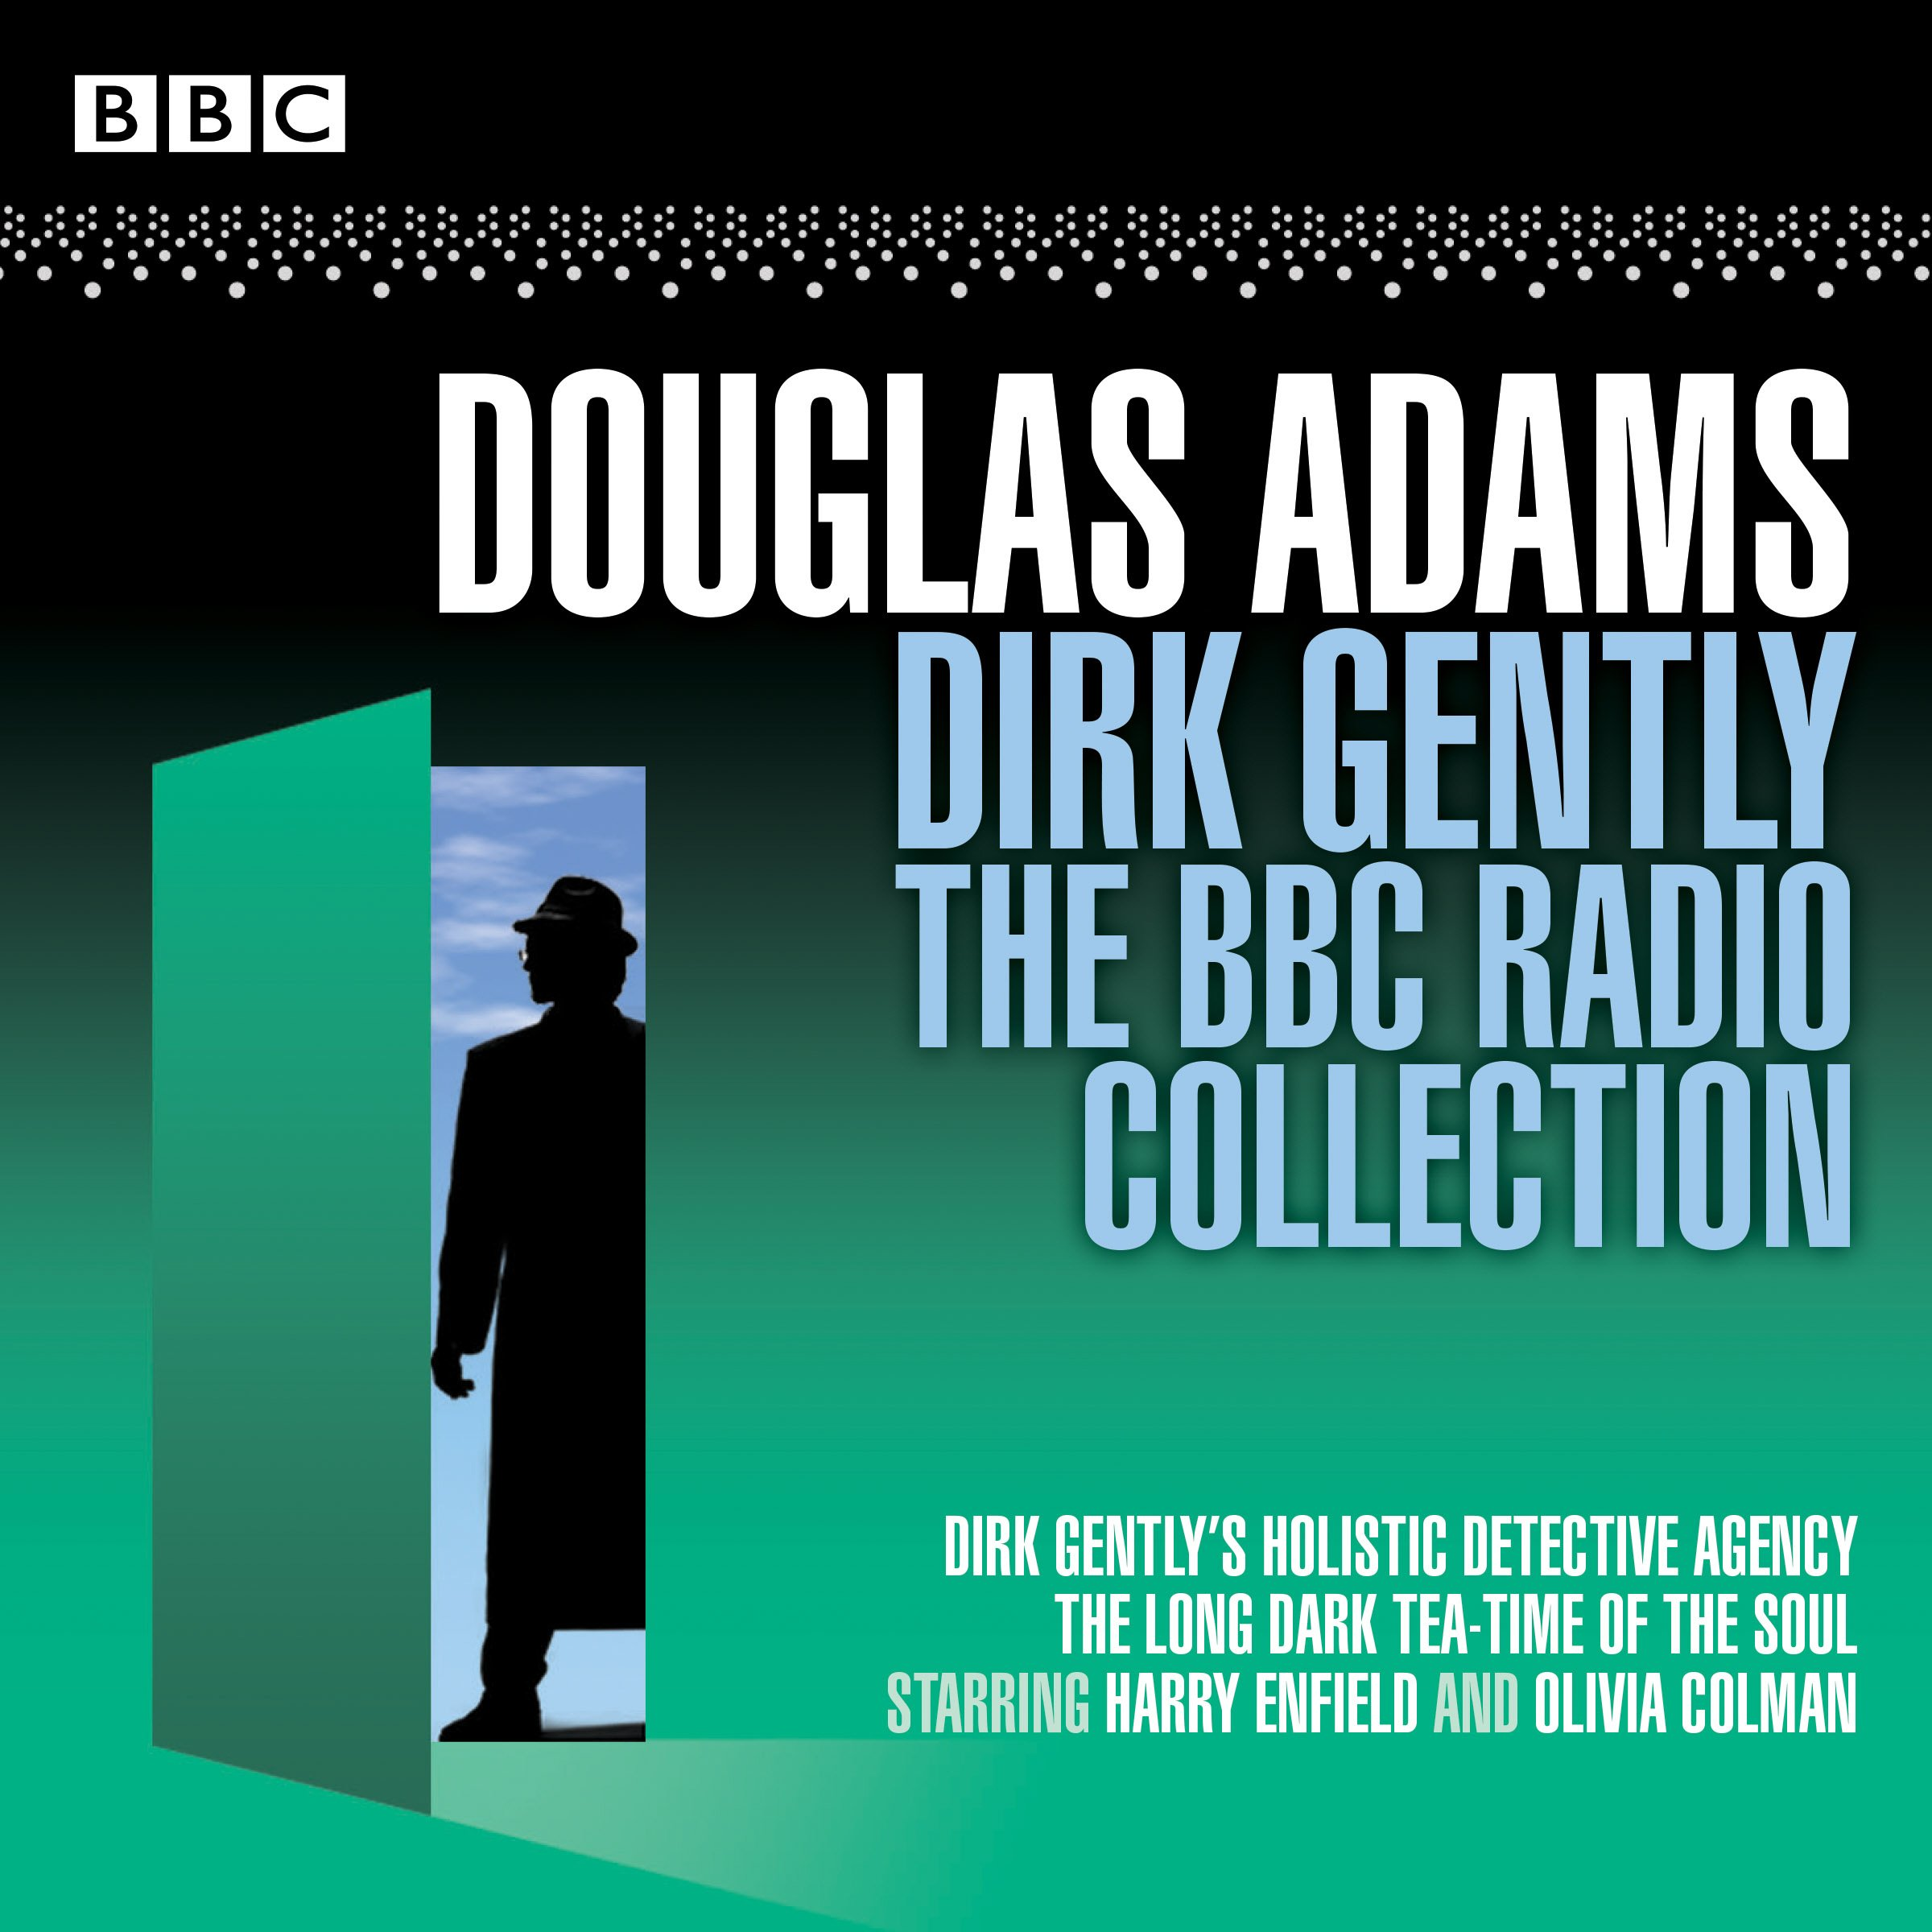 dirk gently the bbc radio collection two bbc radio full cast dramas